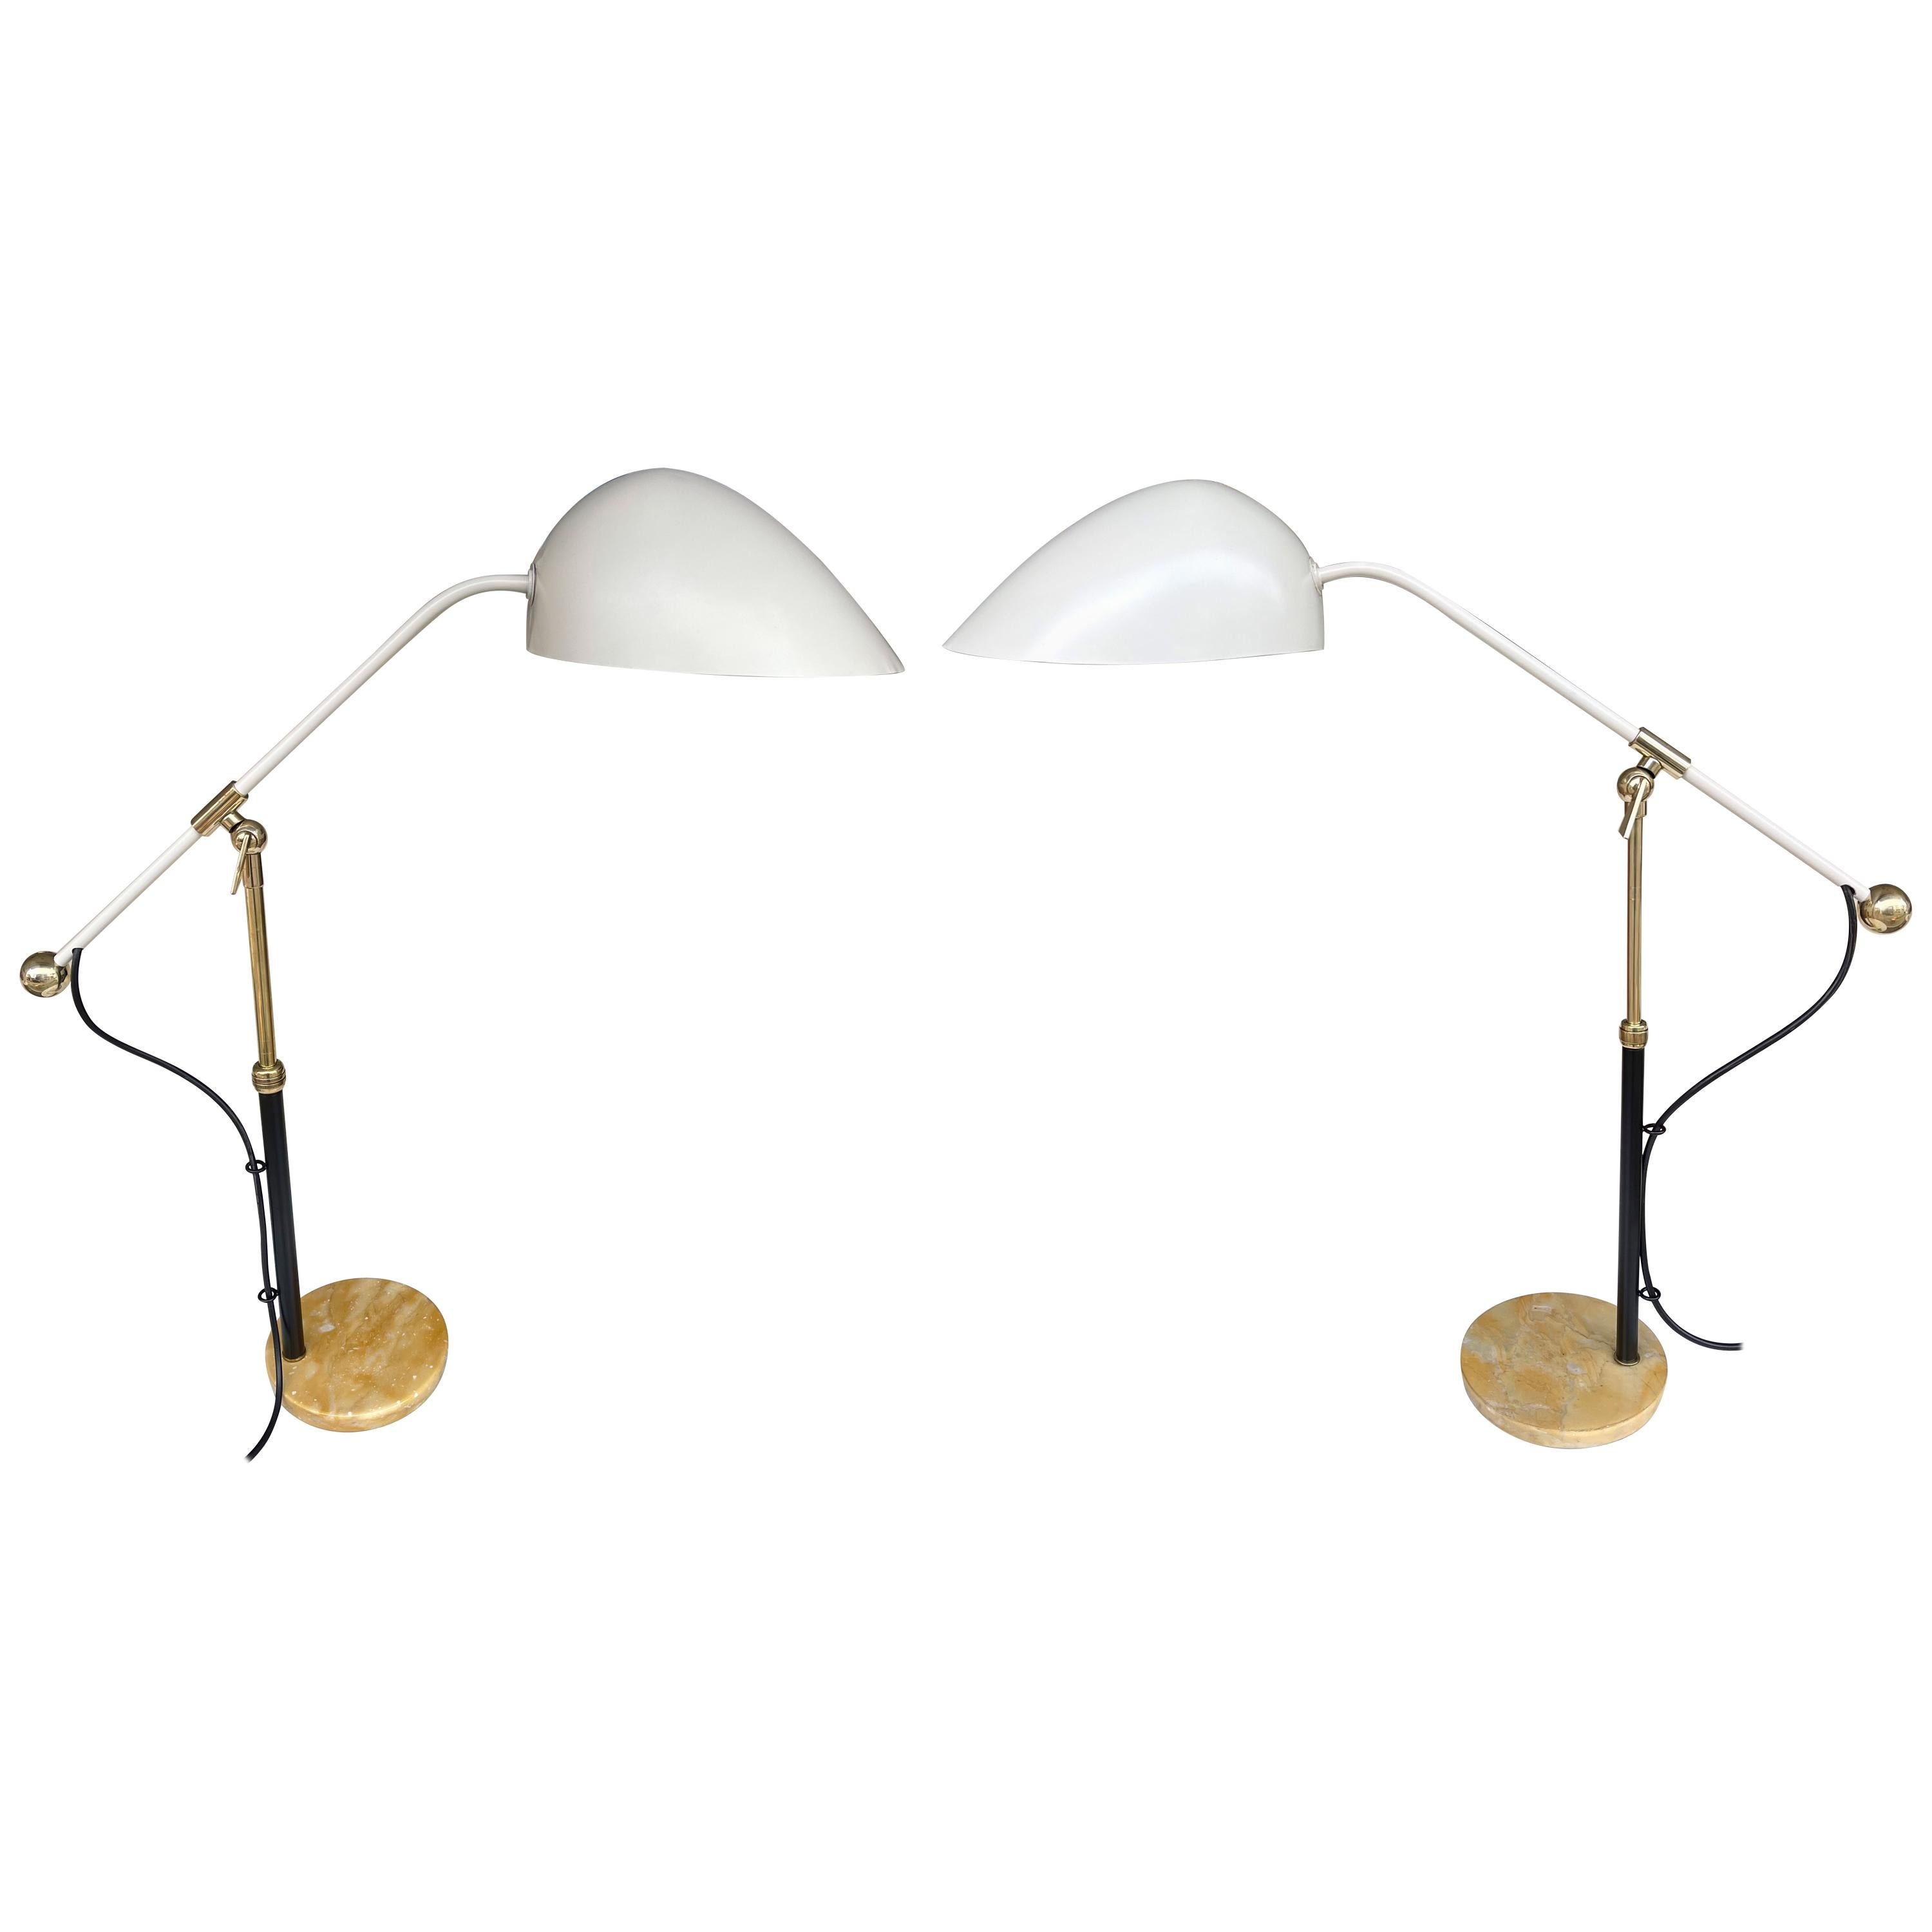 Pair of Lamps M5023 by Angelo Brotto for Esperia, Italy, 1950s